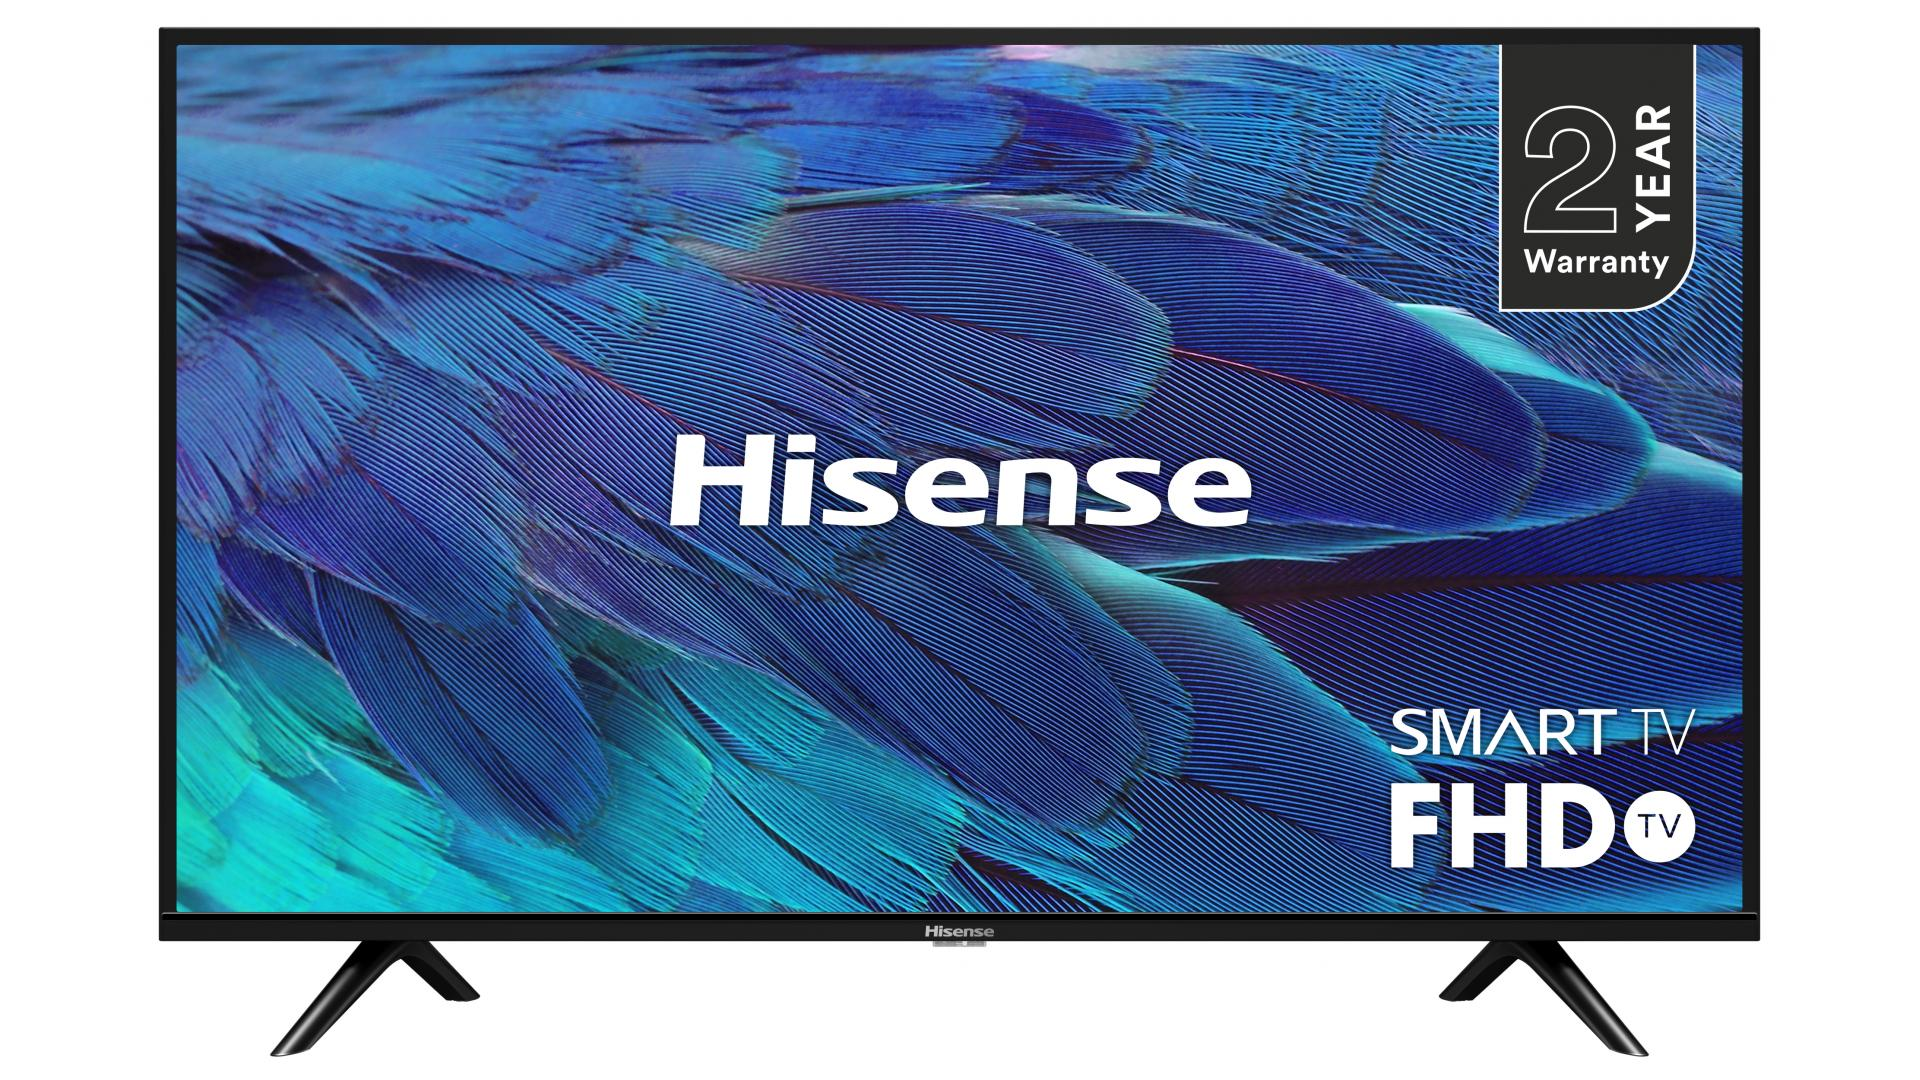 Midwich Ltd - Hisense UK Ltd 40